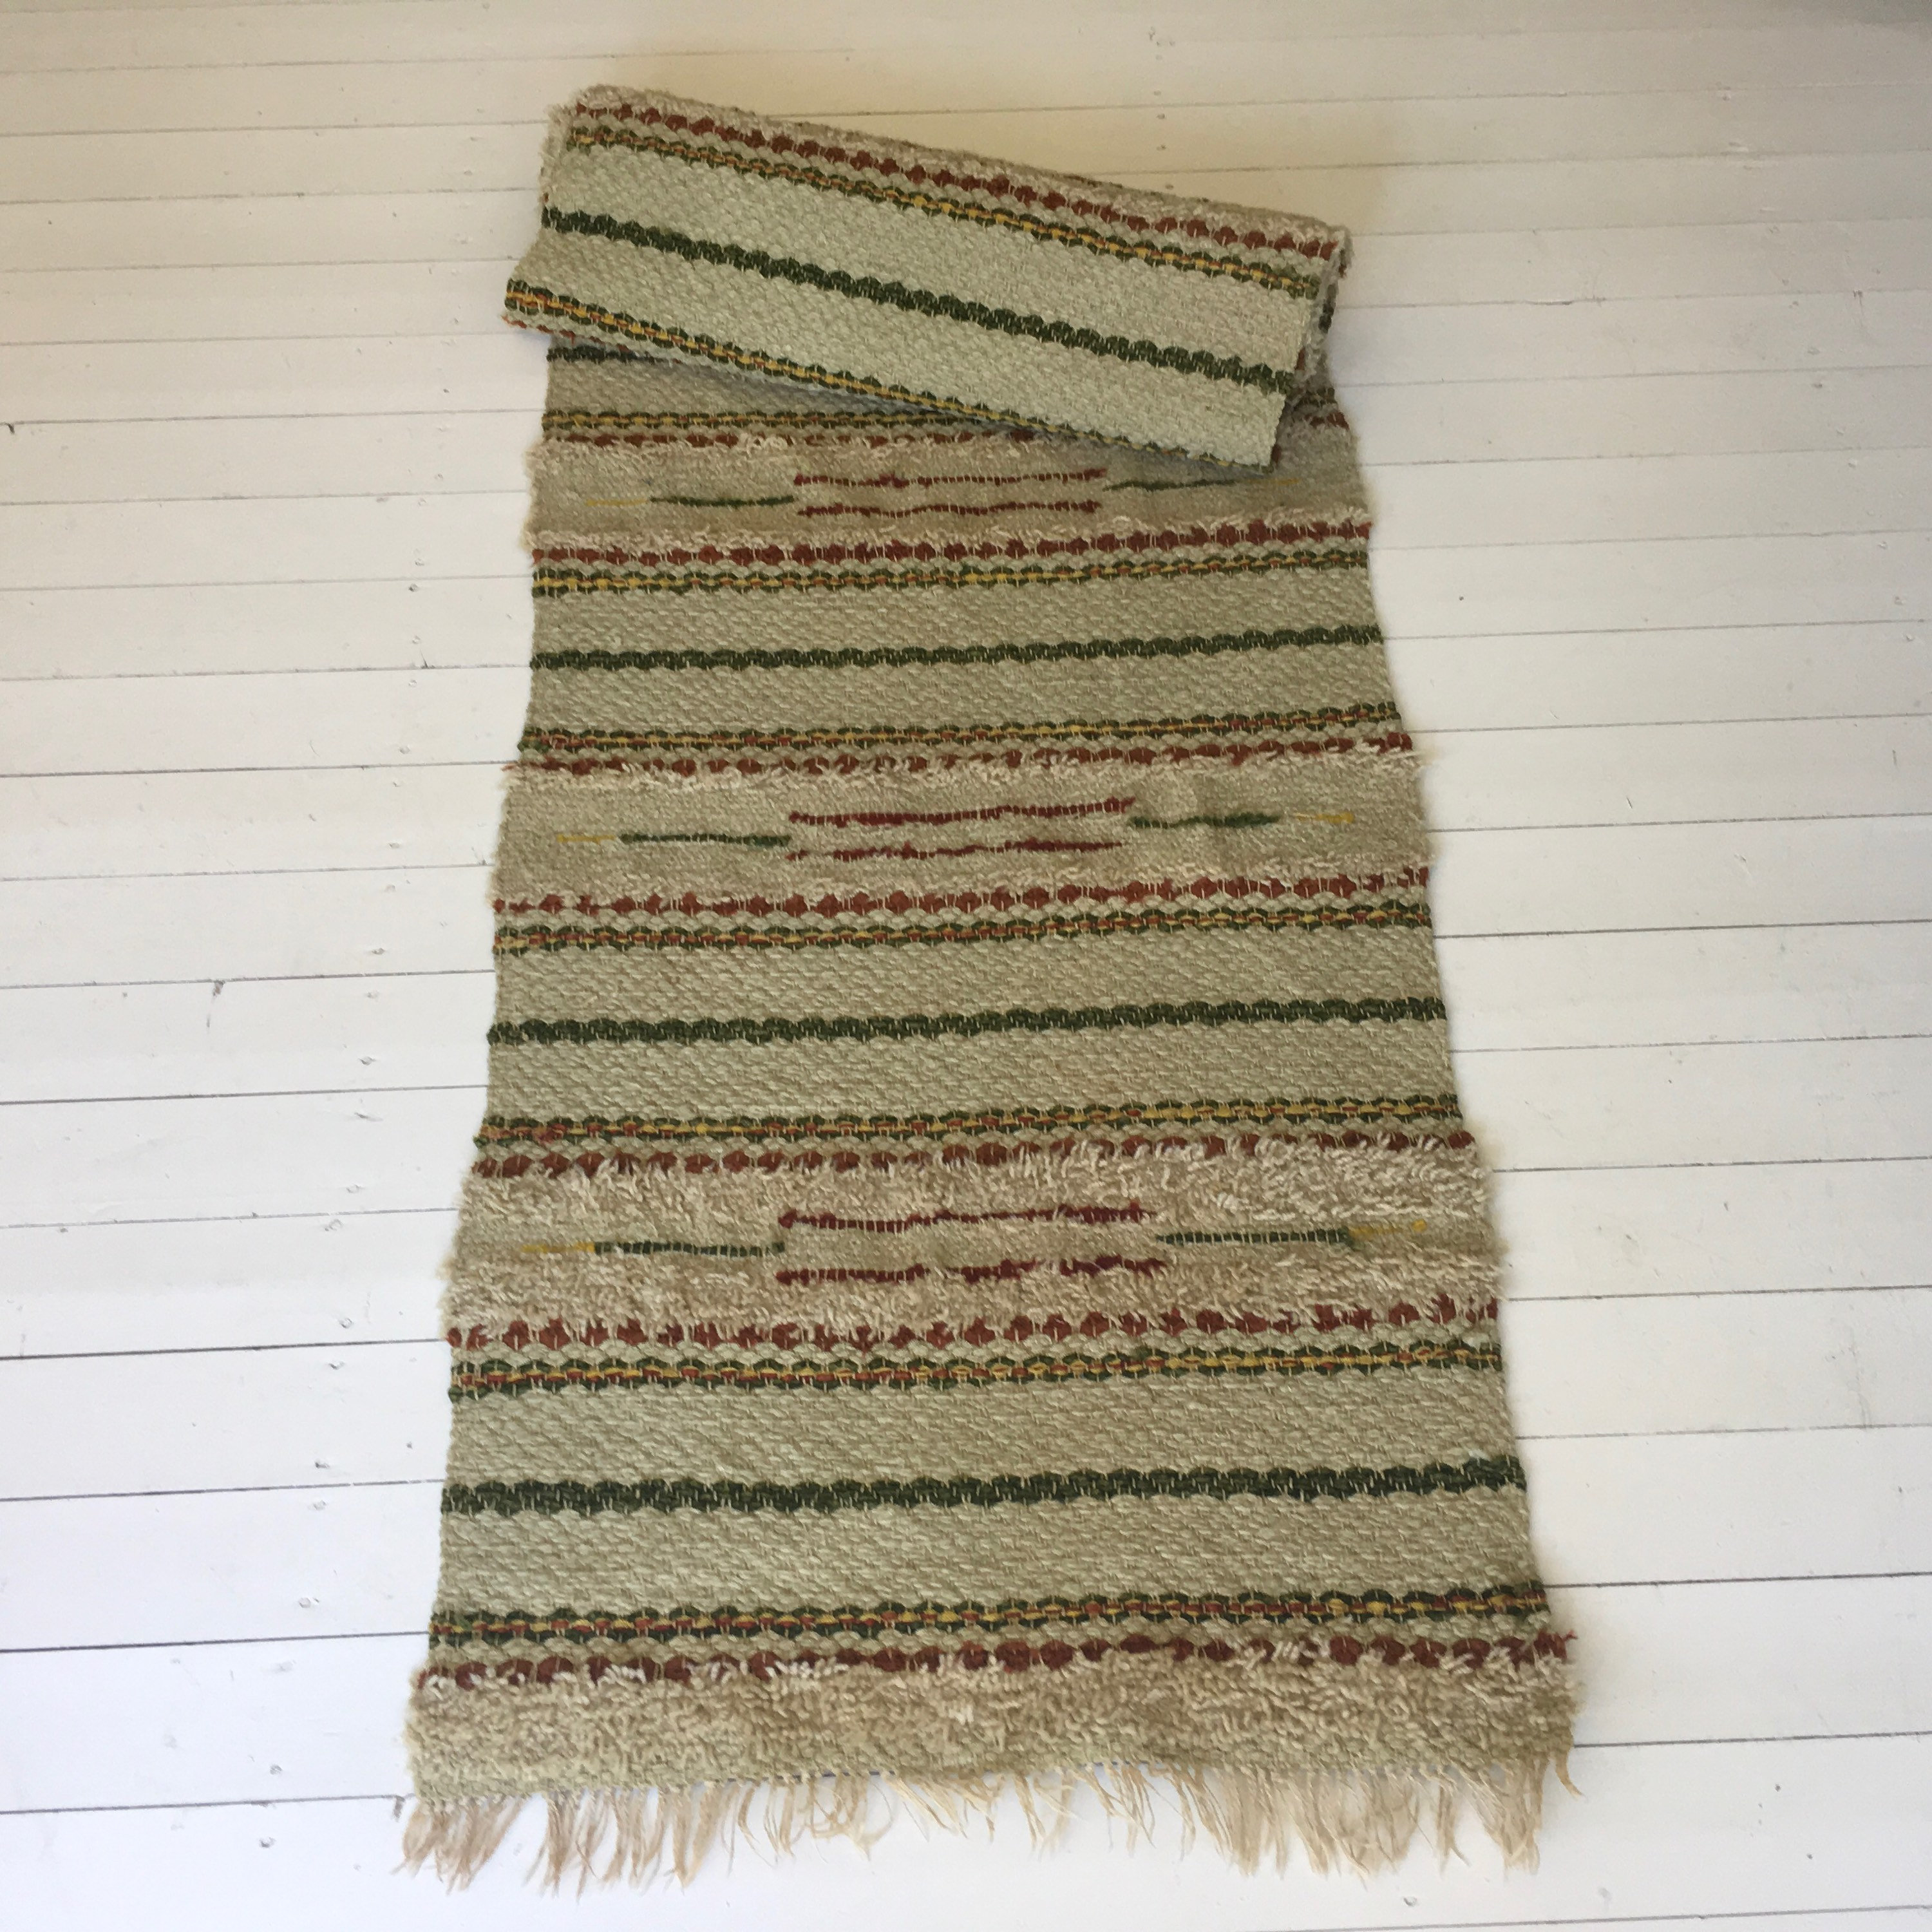 Vintage Swedish Rag Rug In Green,Yellow And Brown Colored